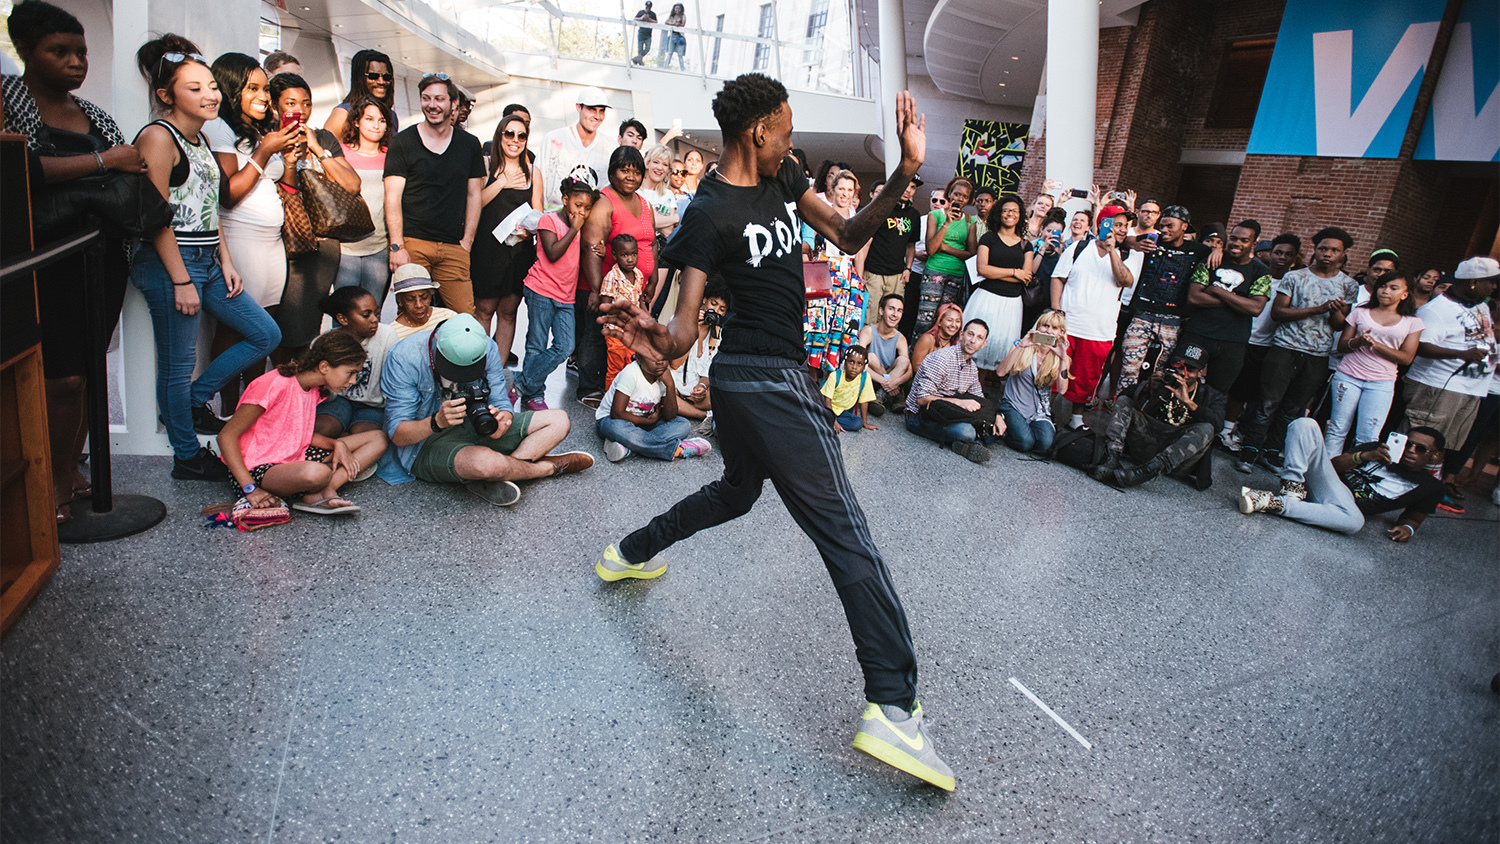 See these energetic photos from the Brooklyn Museum's dance off